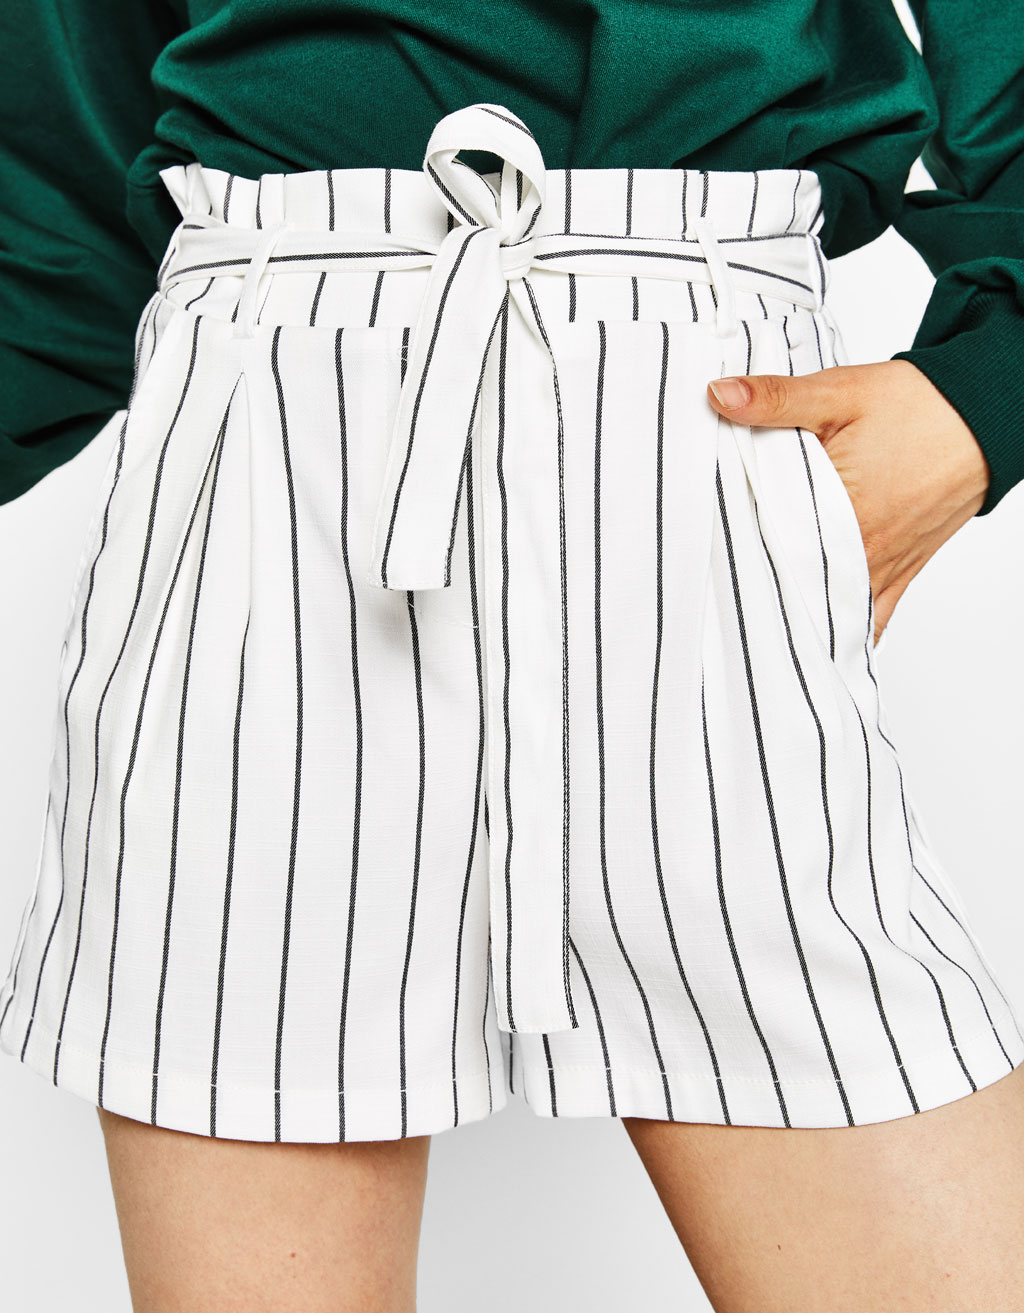 Tailoring shorts with bow belt